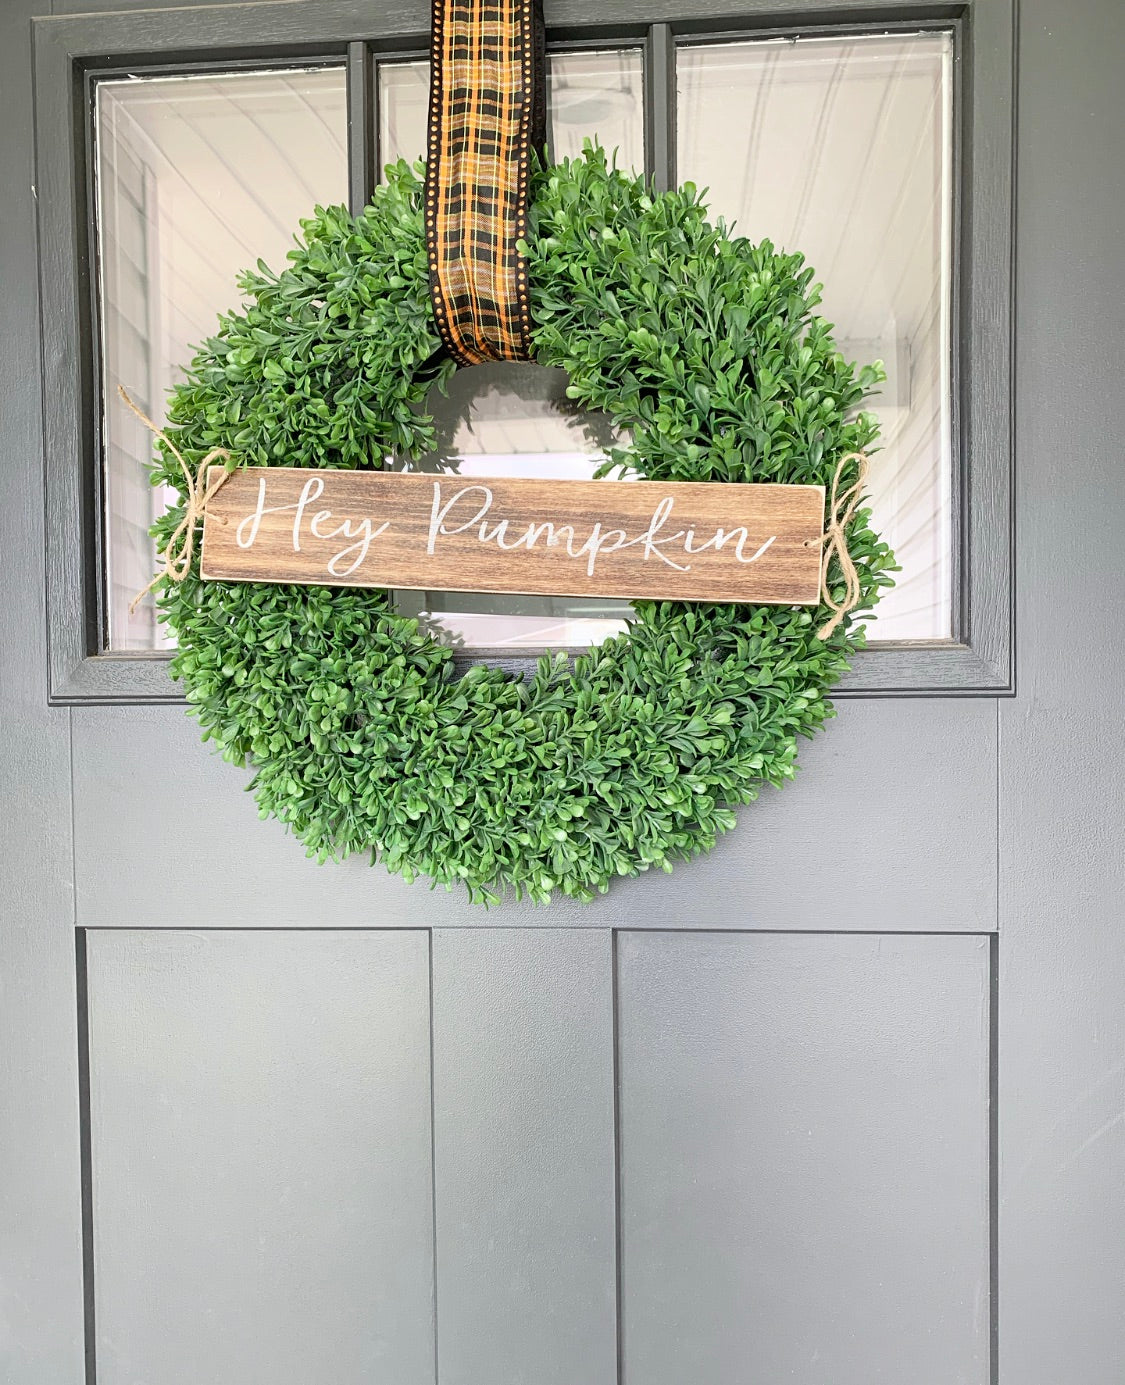 Hey Pumpkin Wreath Sign